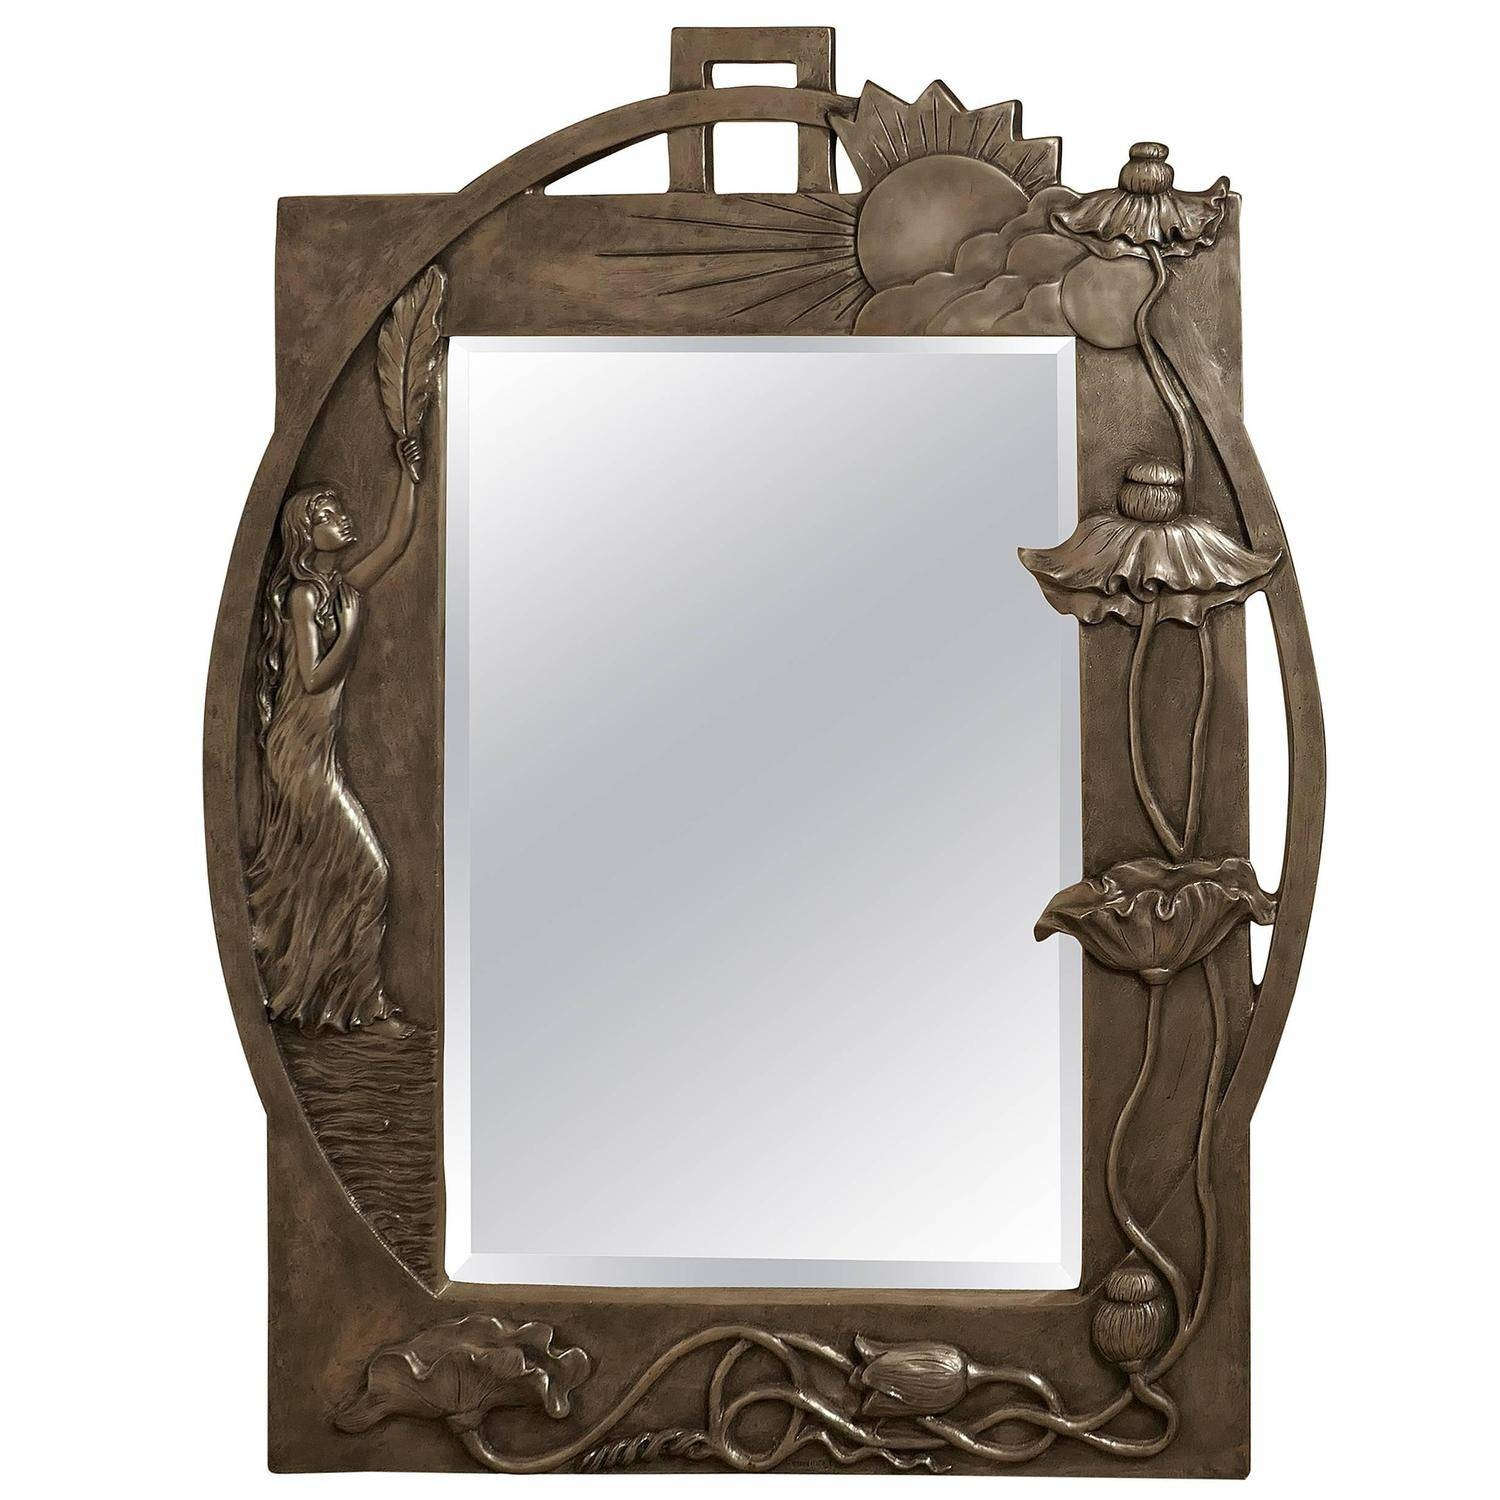 Large Art Nouveau Pewter Wall Mirror, Made In Francerosa Art For Art Nouveau Mirrors (View 13 of 25)